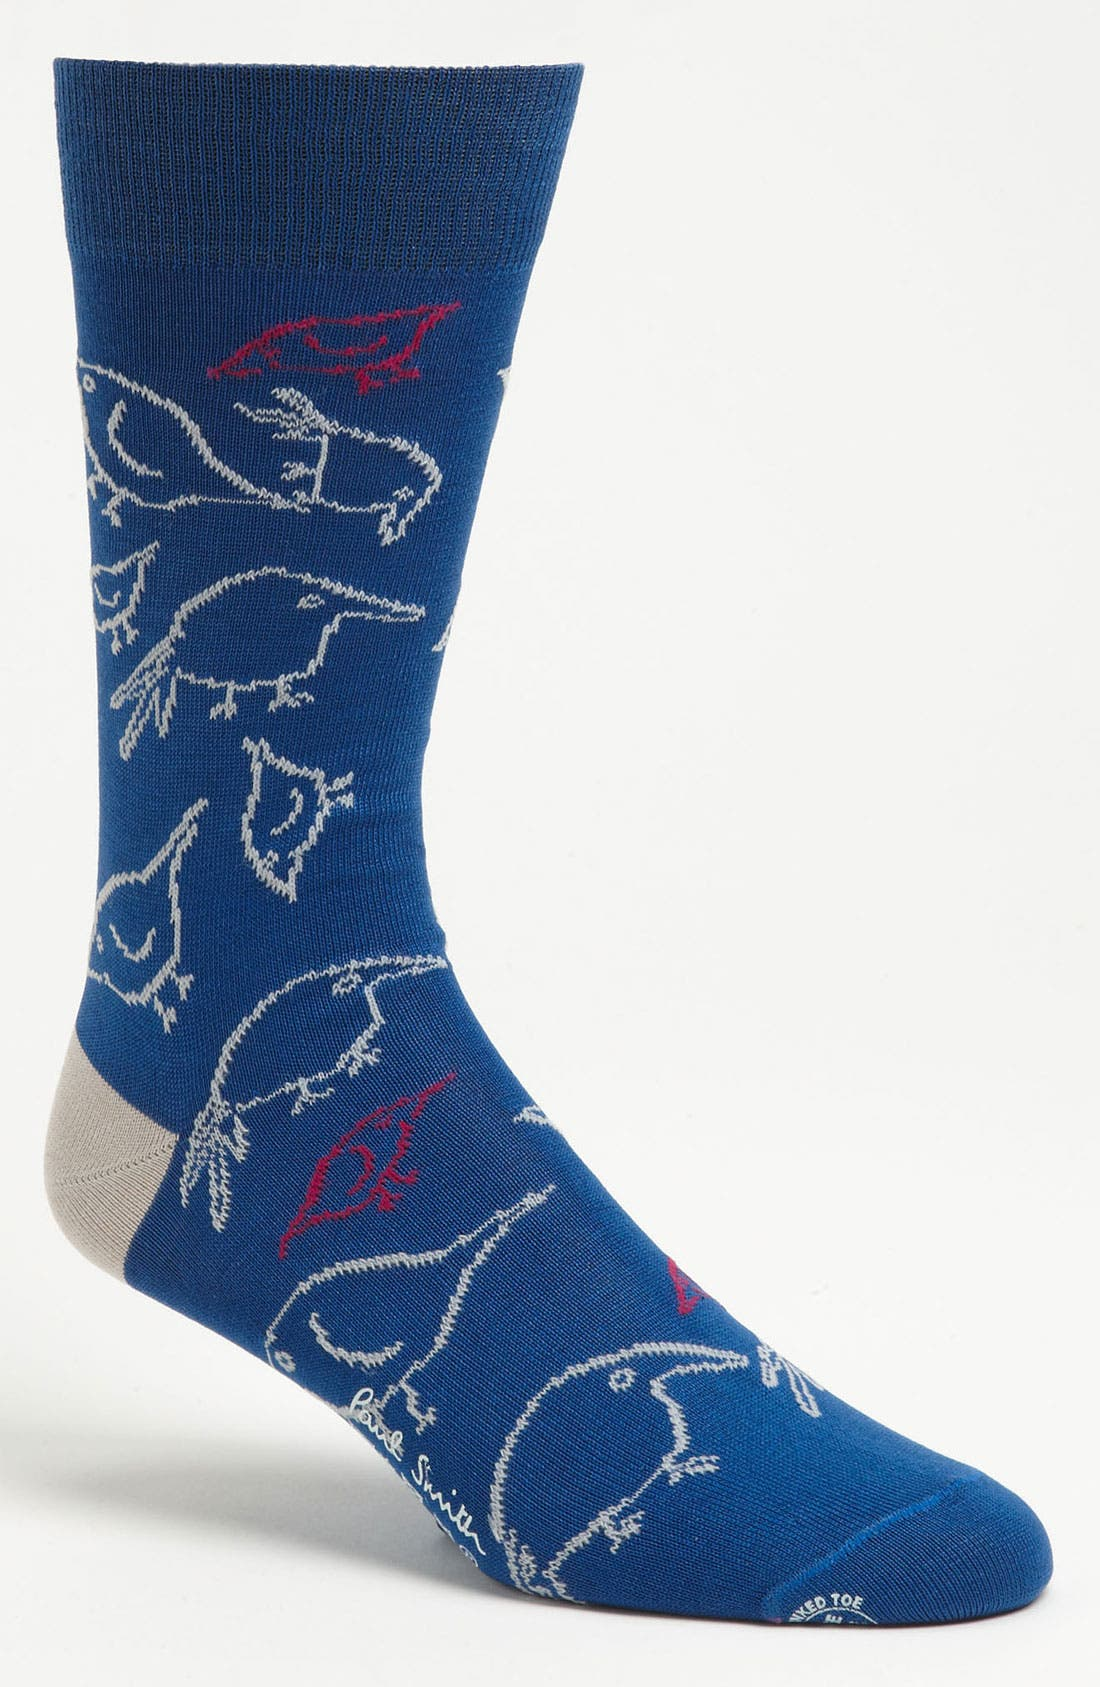 Alternate Image 1 Selected - Paul Smith Accessories 'Birdy' Socks